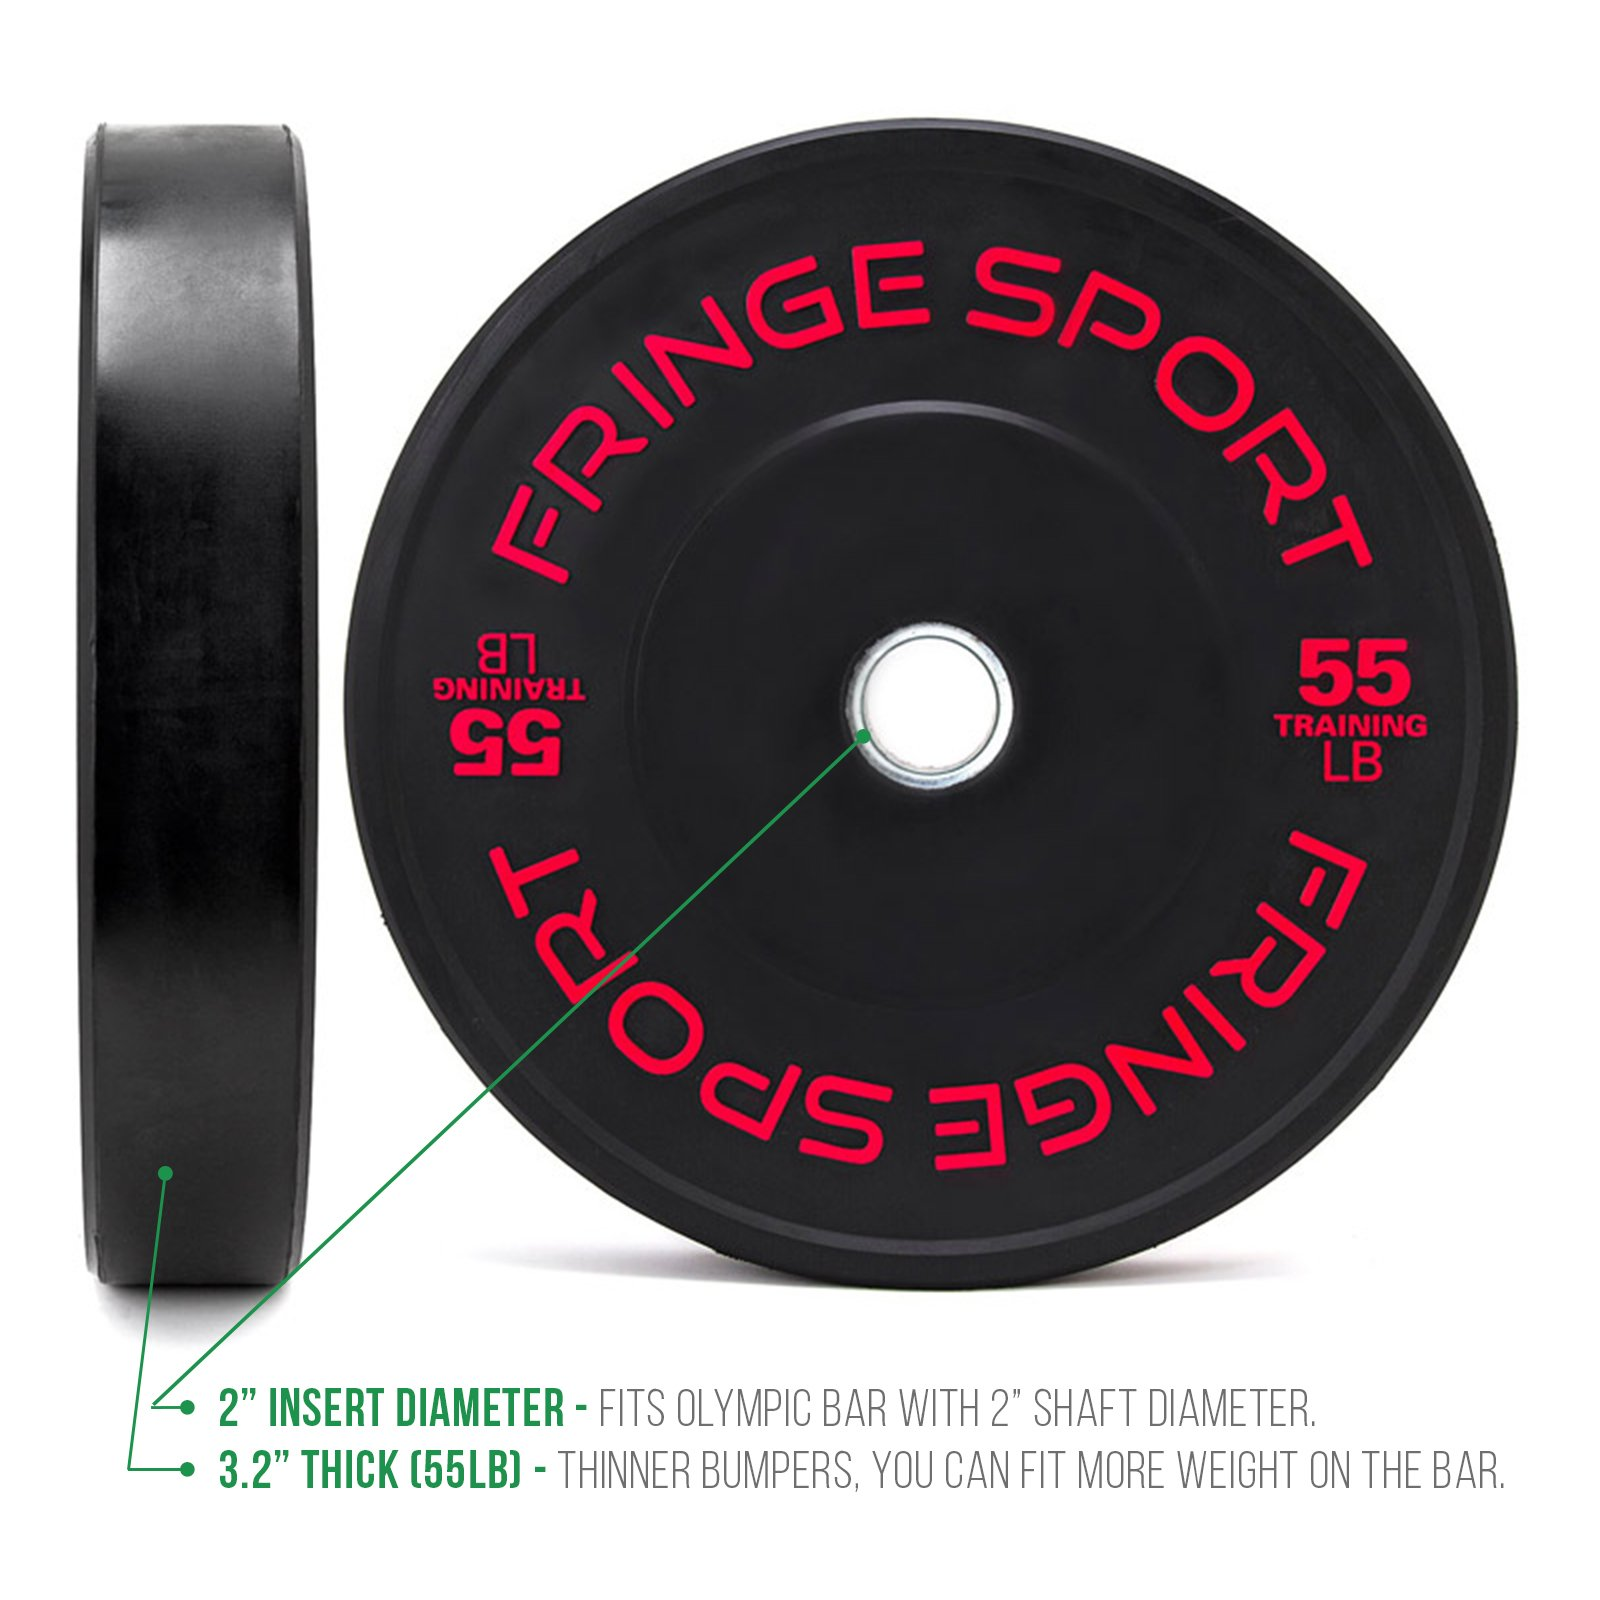 OneFitWonder Contrast Lettering Olympic Bumper Plate Pairs 10lb - 55lb Virgin Rubber for Weightlifting (55)